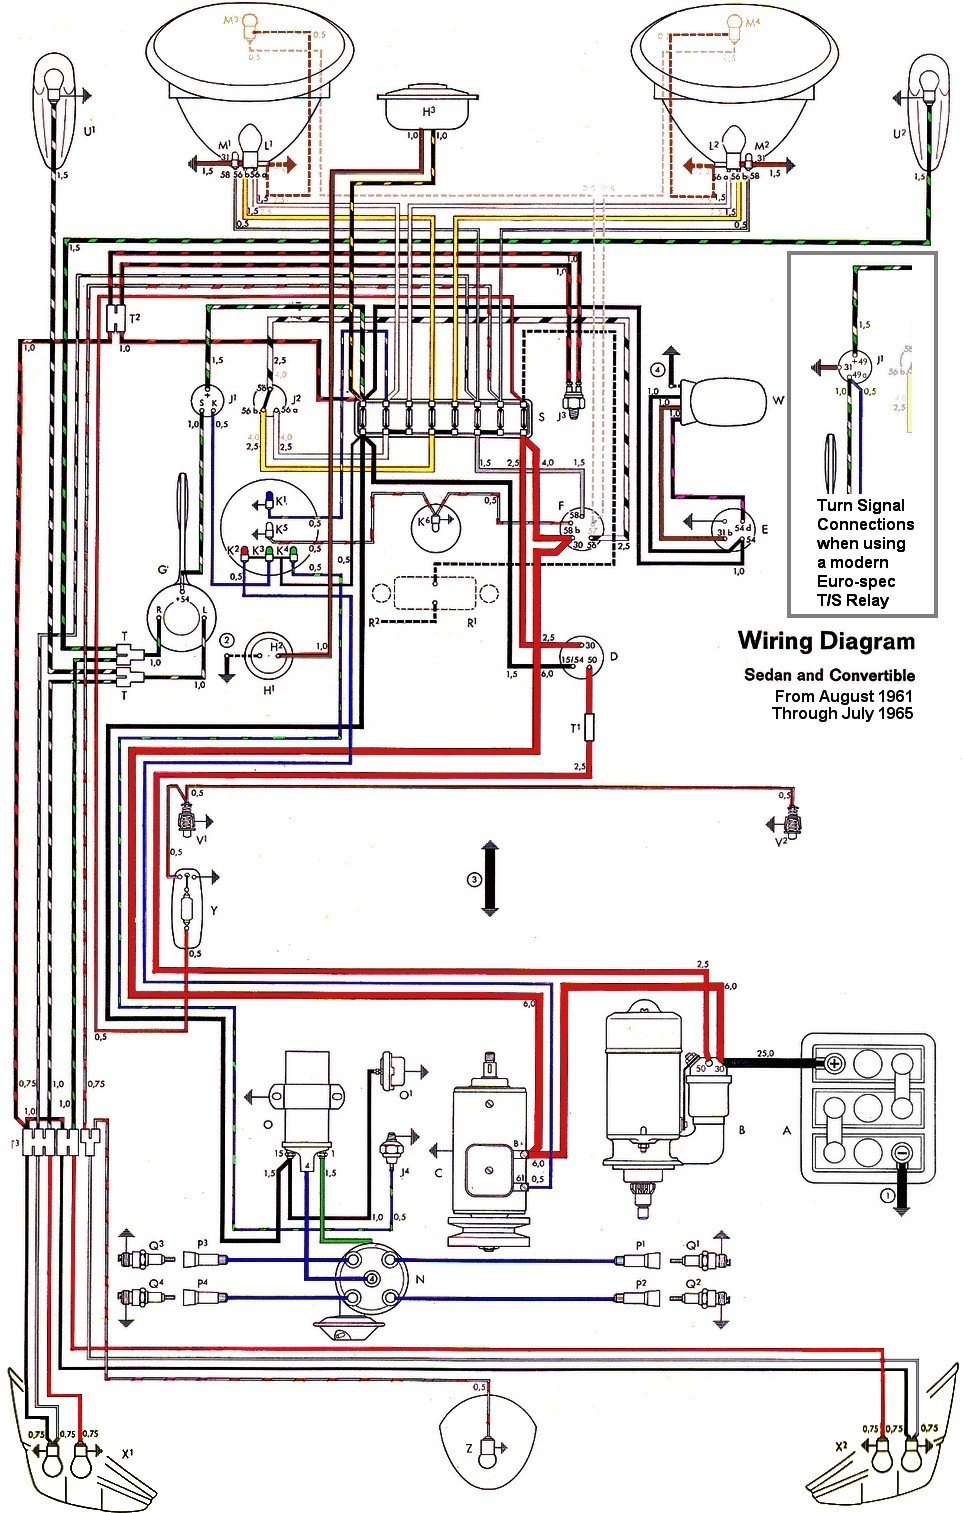 wiring diagram for 1979 vw super beetle wiring diagram database 1973 super beetle wiring diagram thesamba com type 1 wiring diagrams 1979 vw super beetle engine wiring diagram for 1979 vw super beetle